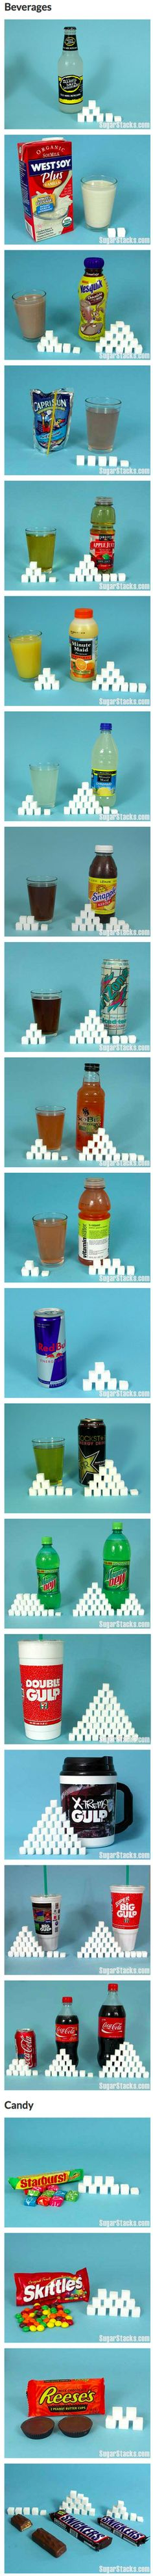 Do you know how much sugar you're consuming every day? Take a look at this list of foods and beverages and find out how much sugar each of them have. Each cube represents 4 grams of sugar.